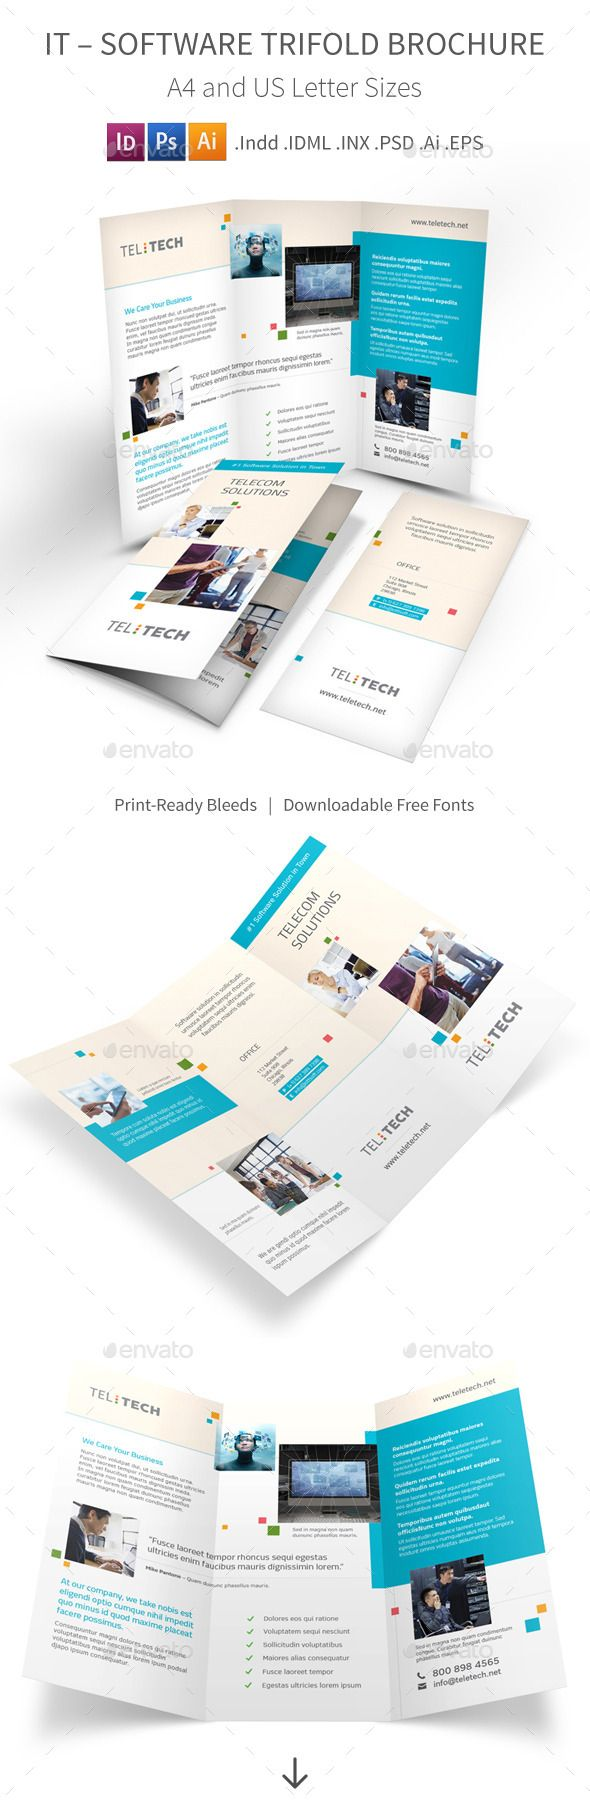 Software Product Brochure Template Radiovkm